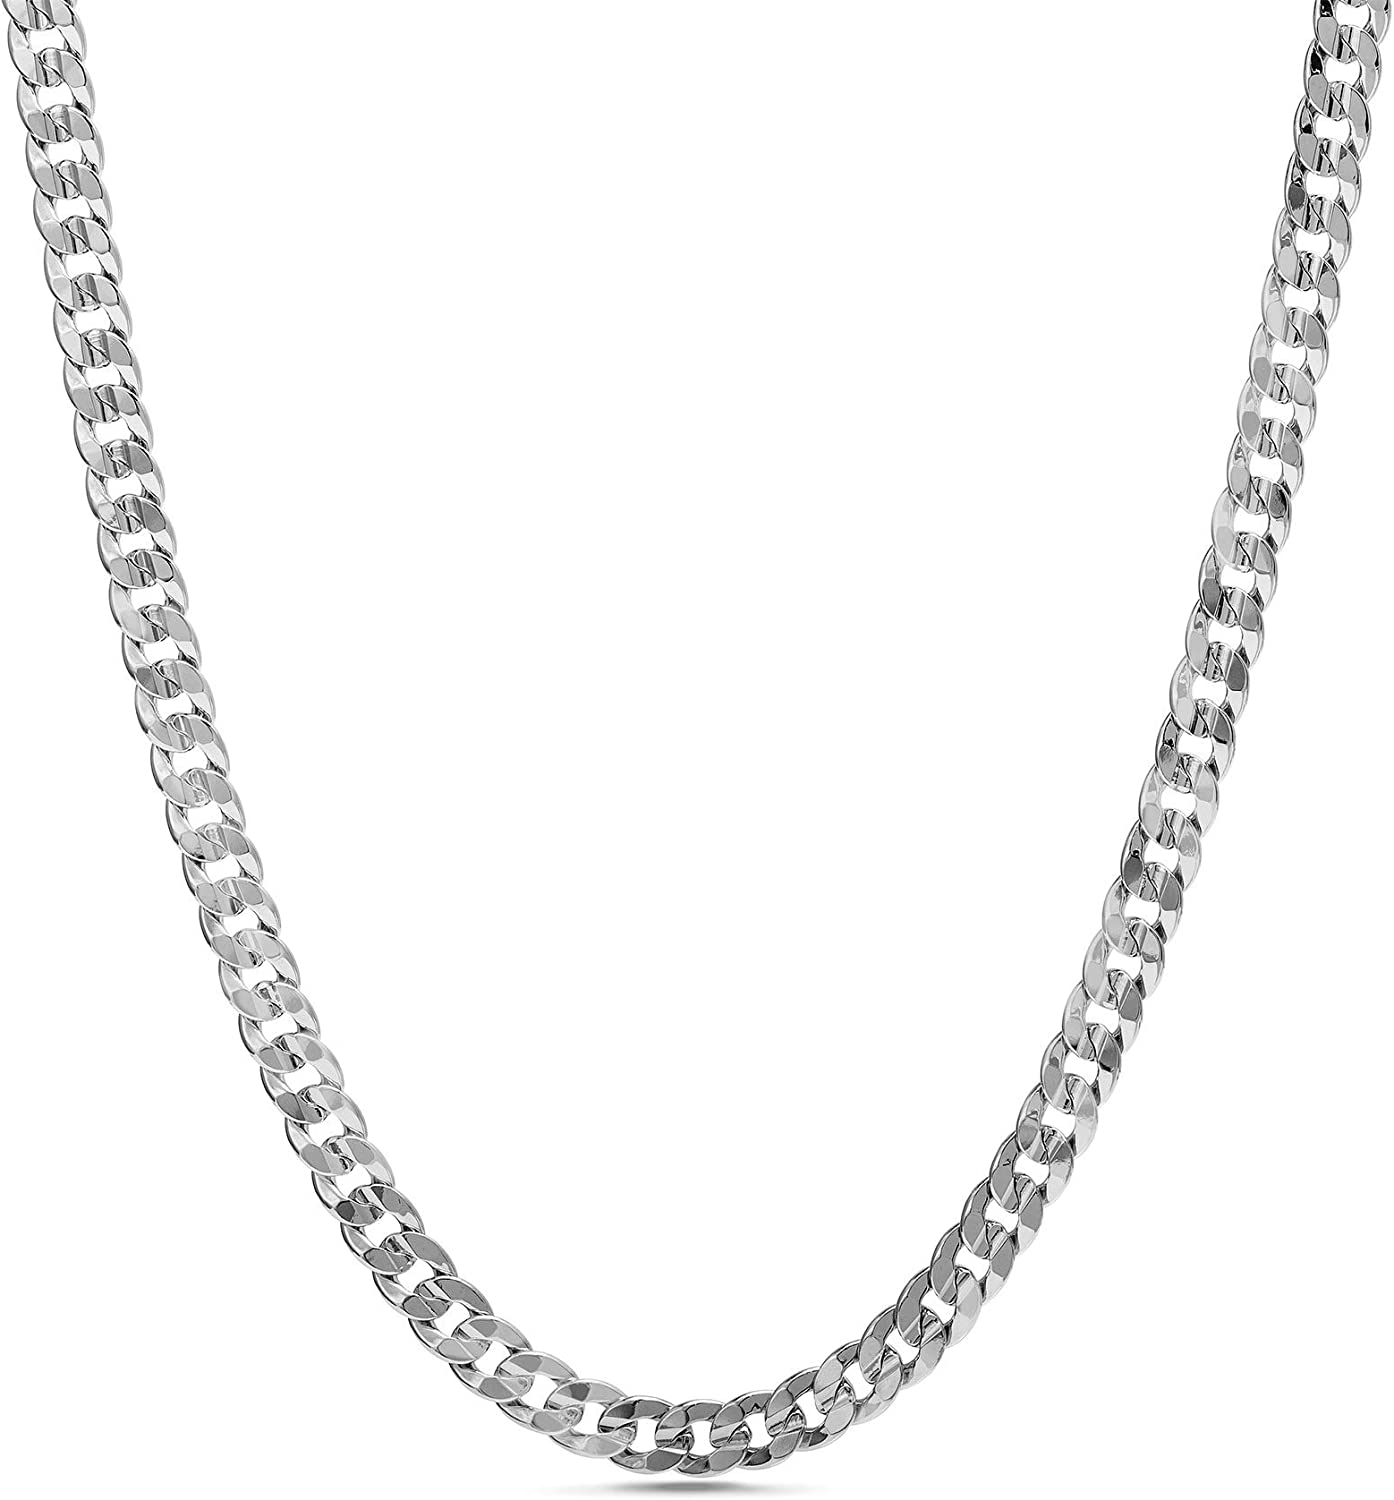 Nautica Free Shipping New 1.2mm Inexpensive - 2.3mm Miami Cuban Chain Men for Wome Necklace or